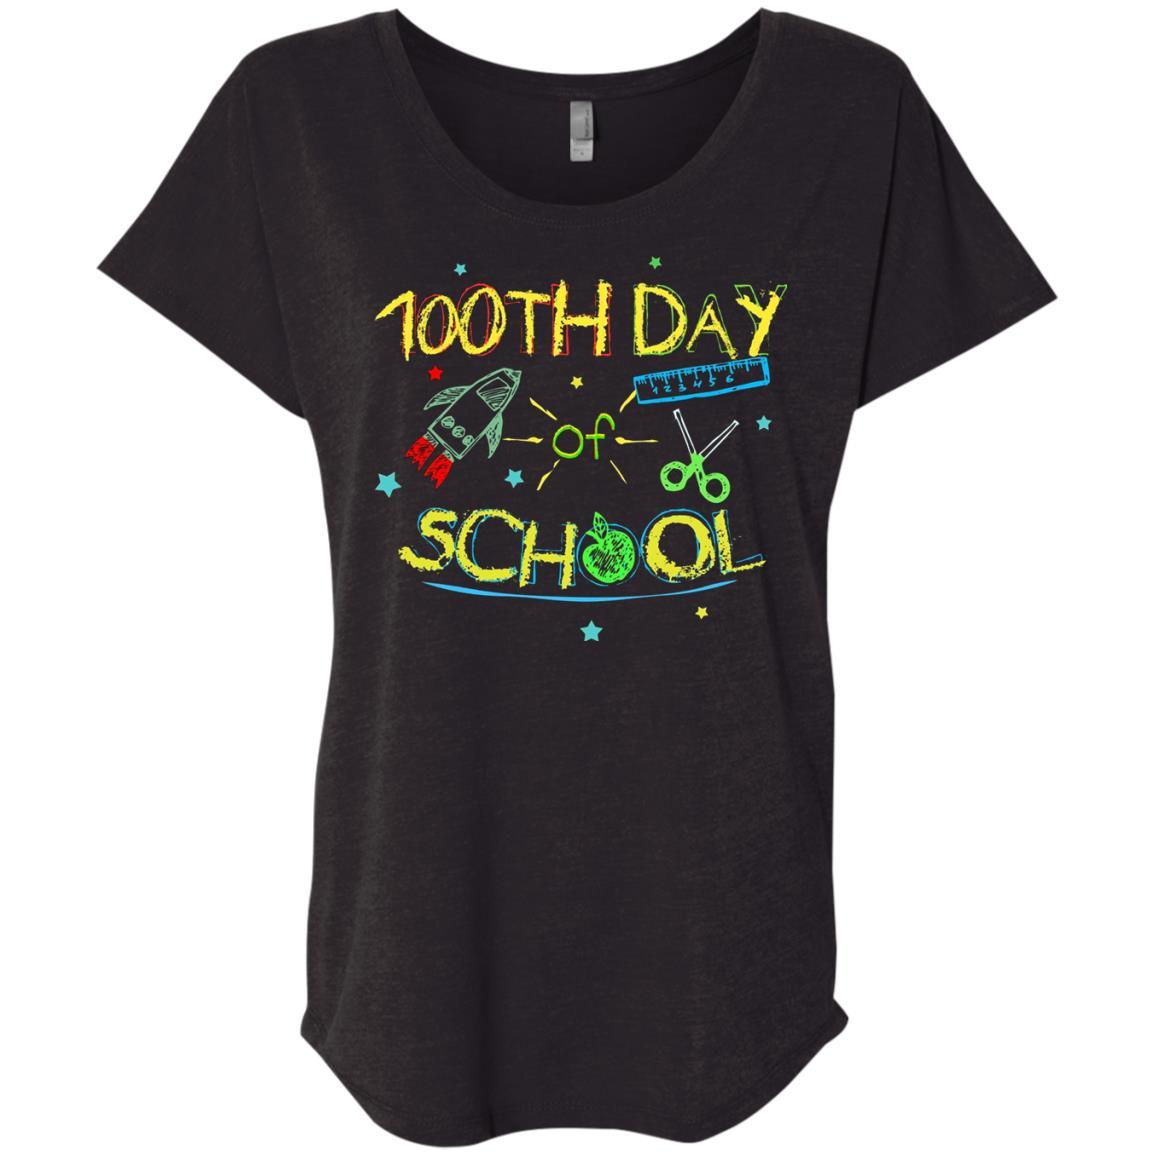 100th Day Of School - School Project and Gift Idea T-Shirt